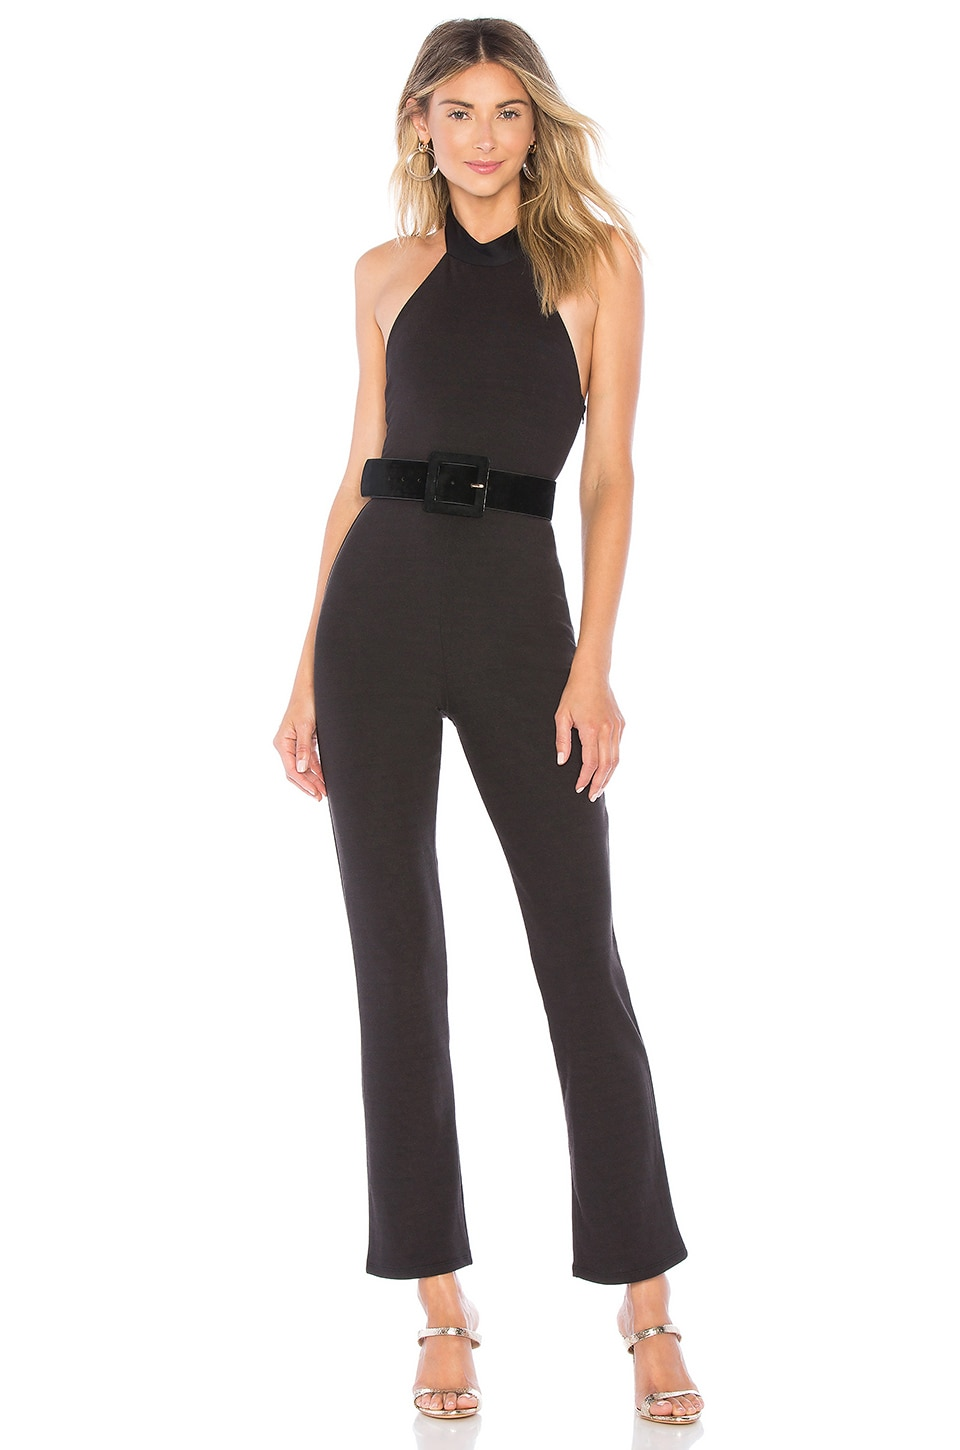 Privacy Please Maddie Jumpsuit in Black